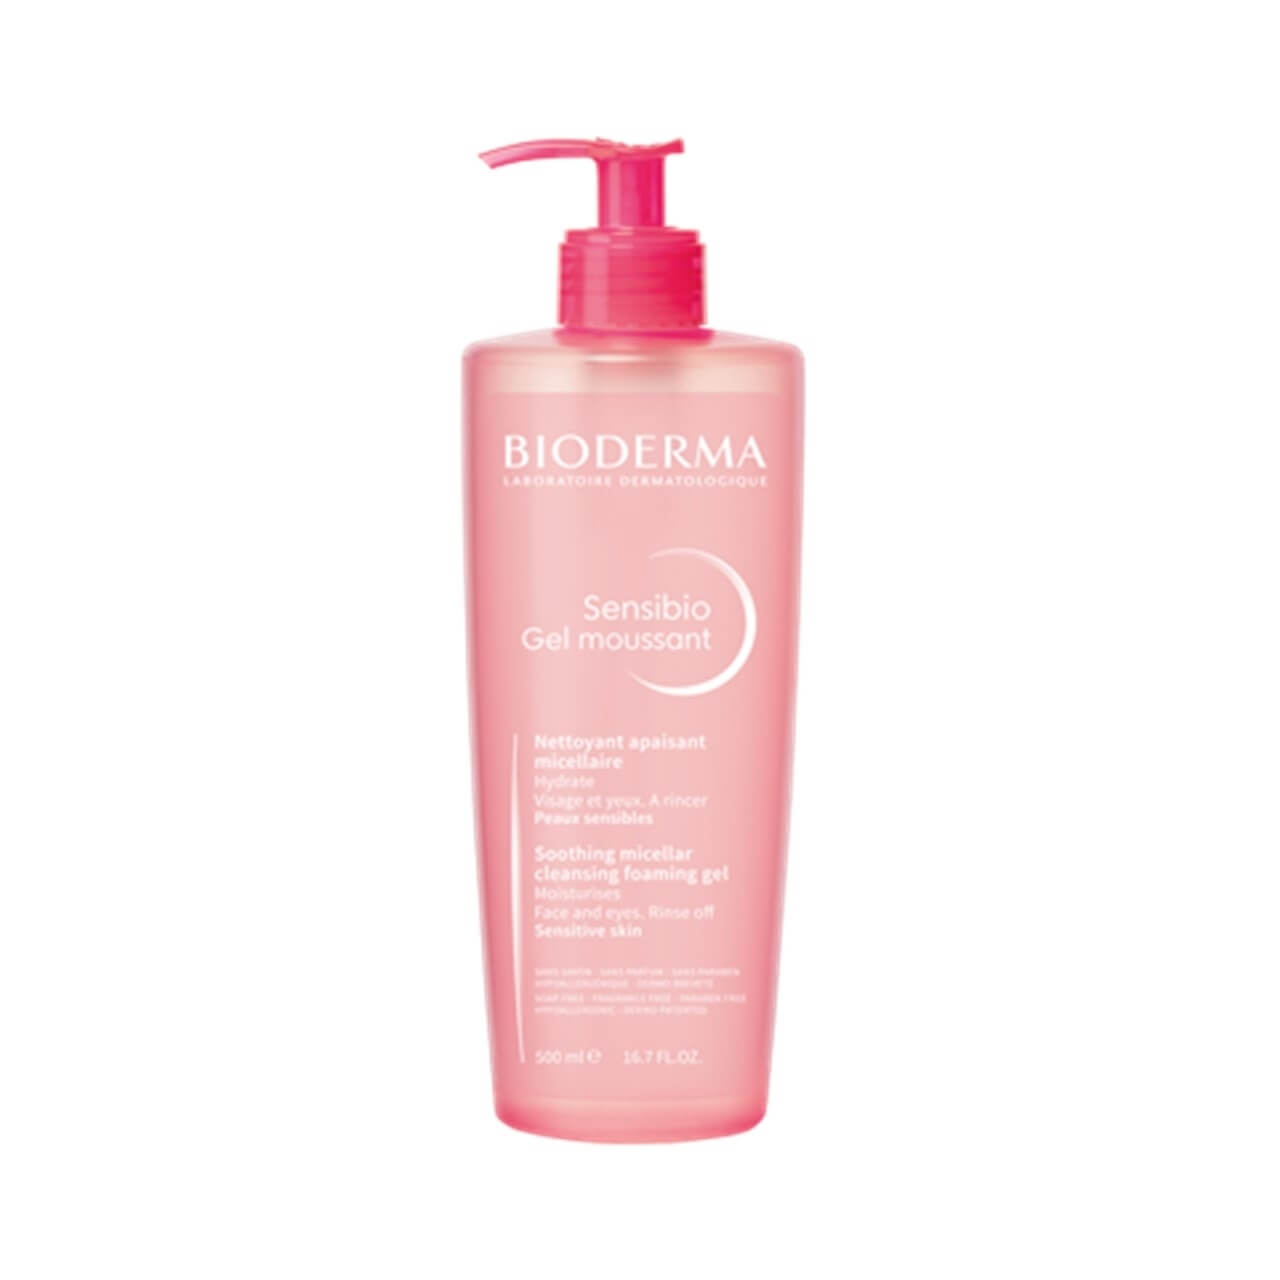 Bioderma | Sensibio Foaming Facial Cleansing Gel |  $14.90